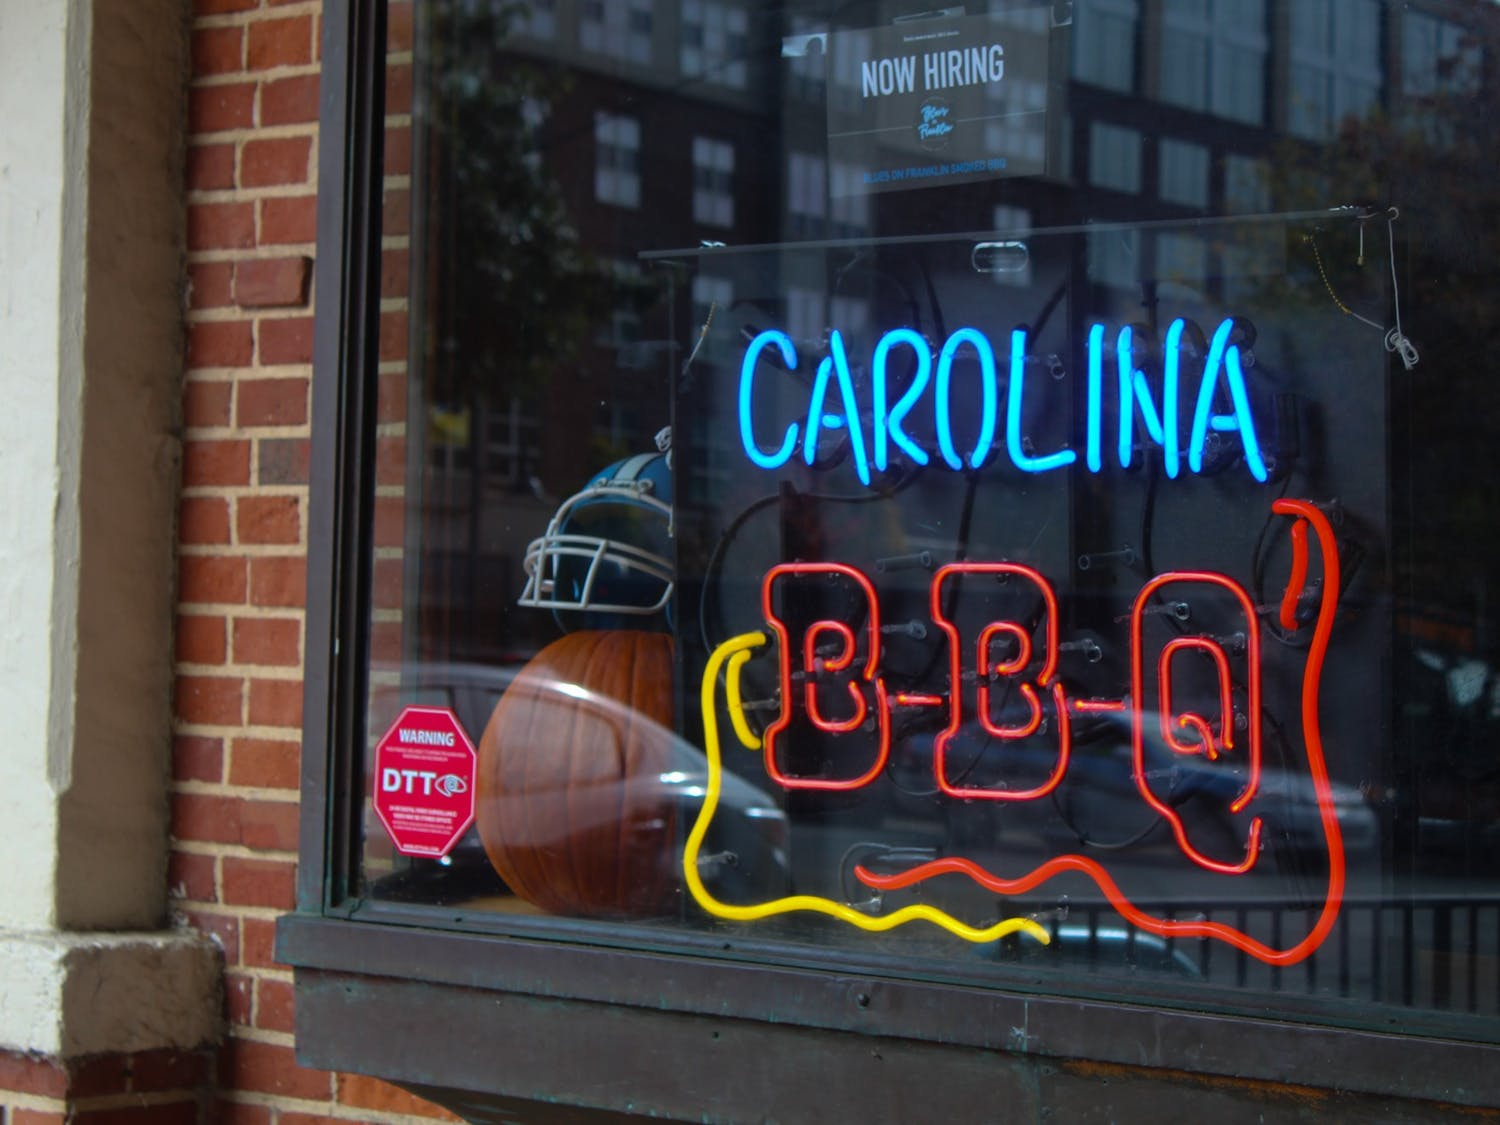 After a number of restaurant closings in the Chapel Hill area due to COVID-19, new businesses such as Andrew Young's Blue's BBQ, located at 110 W Franklin St, look to find success during the pandemic.